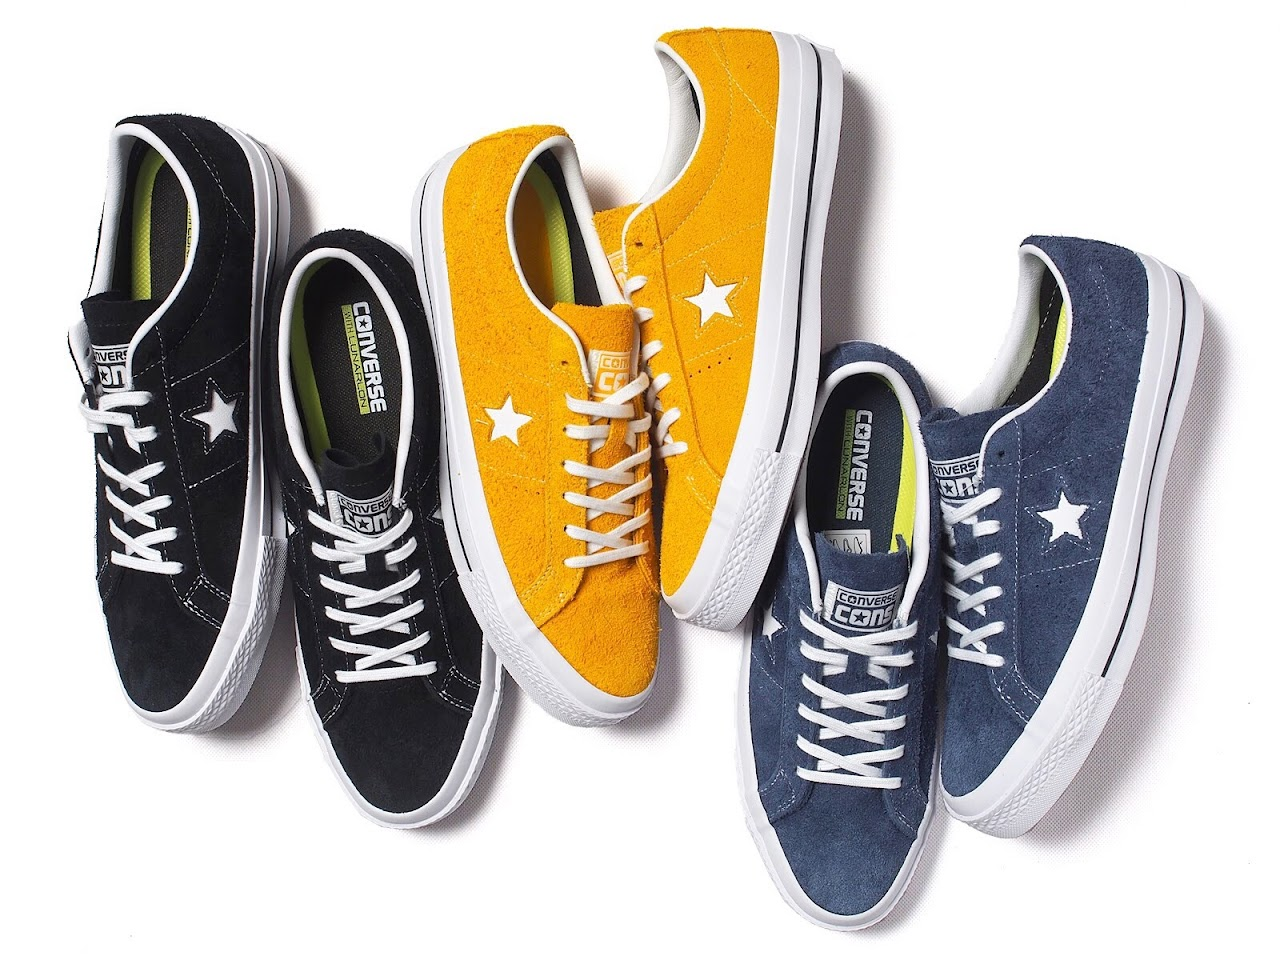 Converse / Cons One Star OX